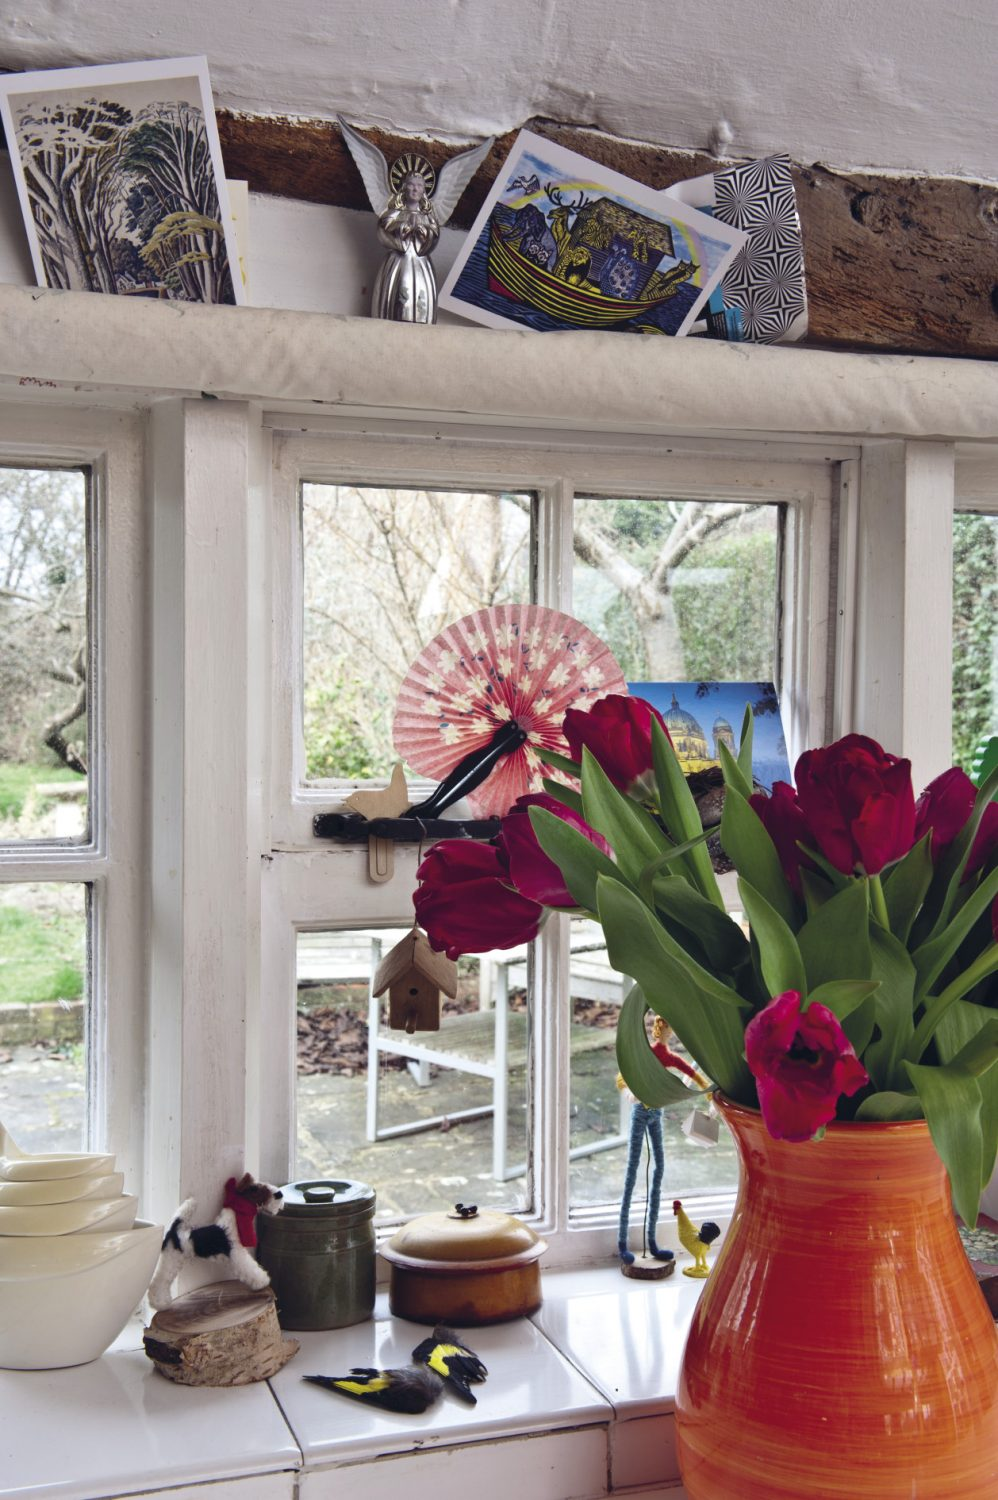 Fresh and dried flowers can be found throughout the house